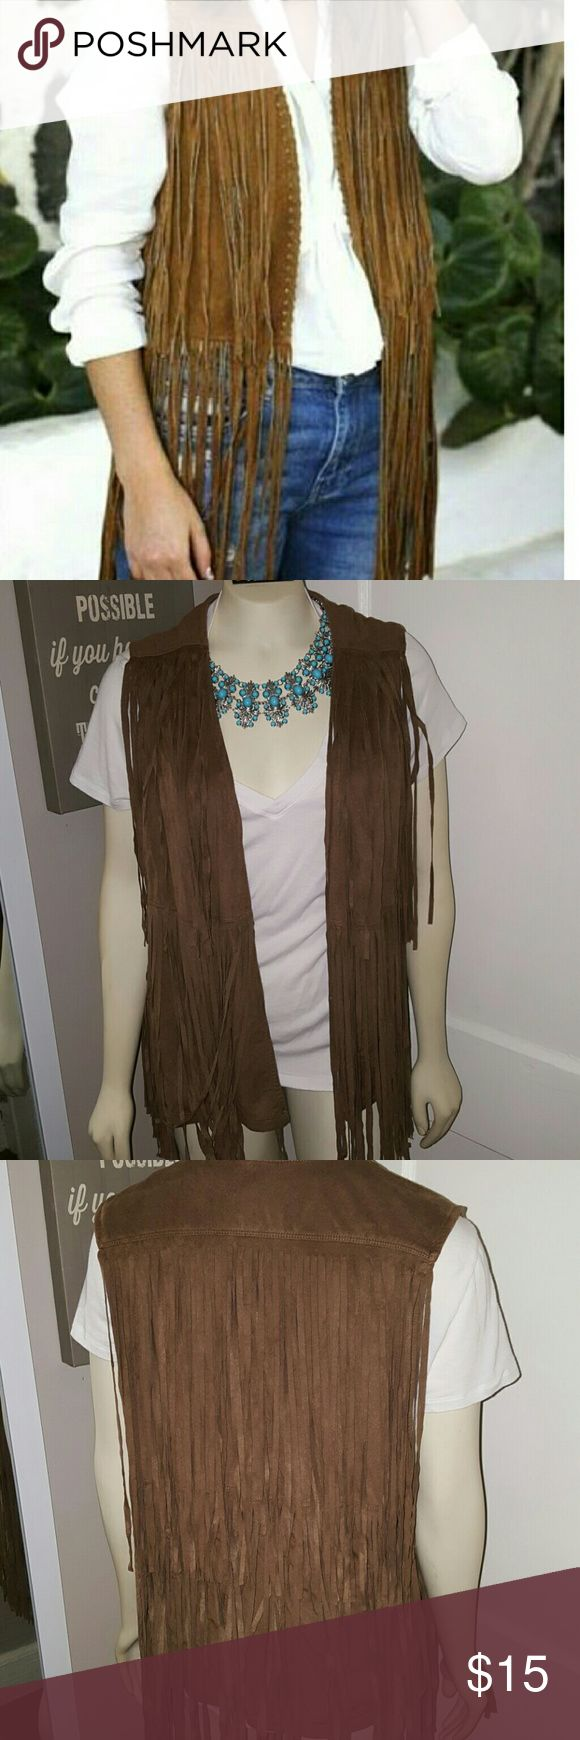 Mossimo Brown faux suede fringe vest Mossimo supply faux suede fringe vest Mossimo Supply Co. Jackets & Coats Vests